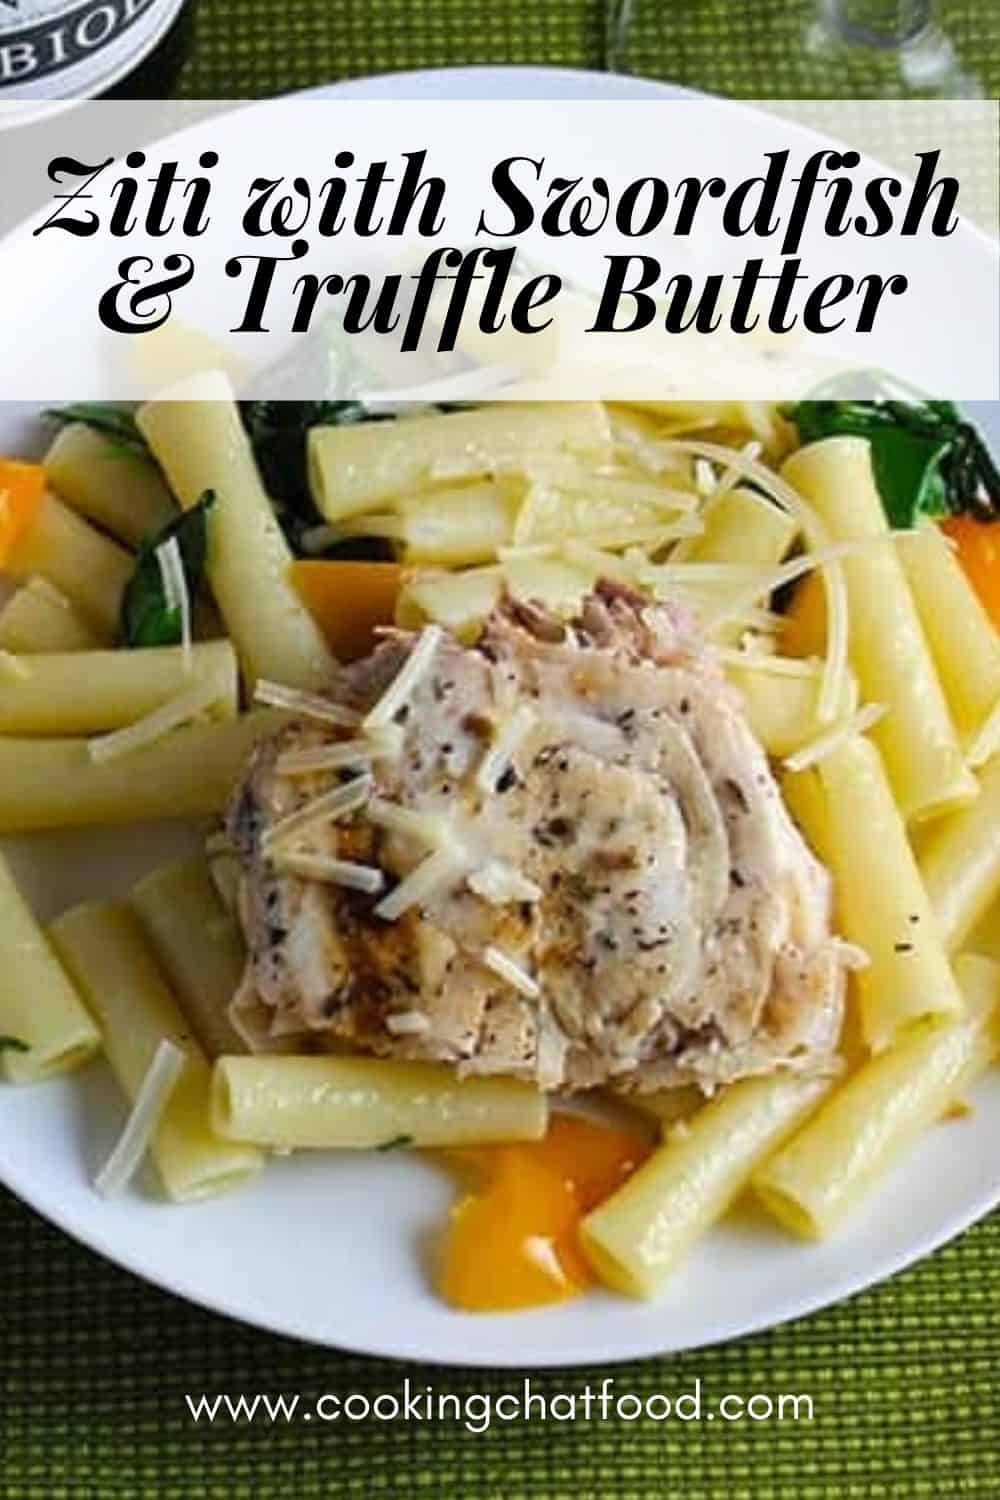 grilled swordfish with truffle butter served on top of ziti.